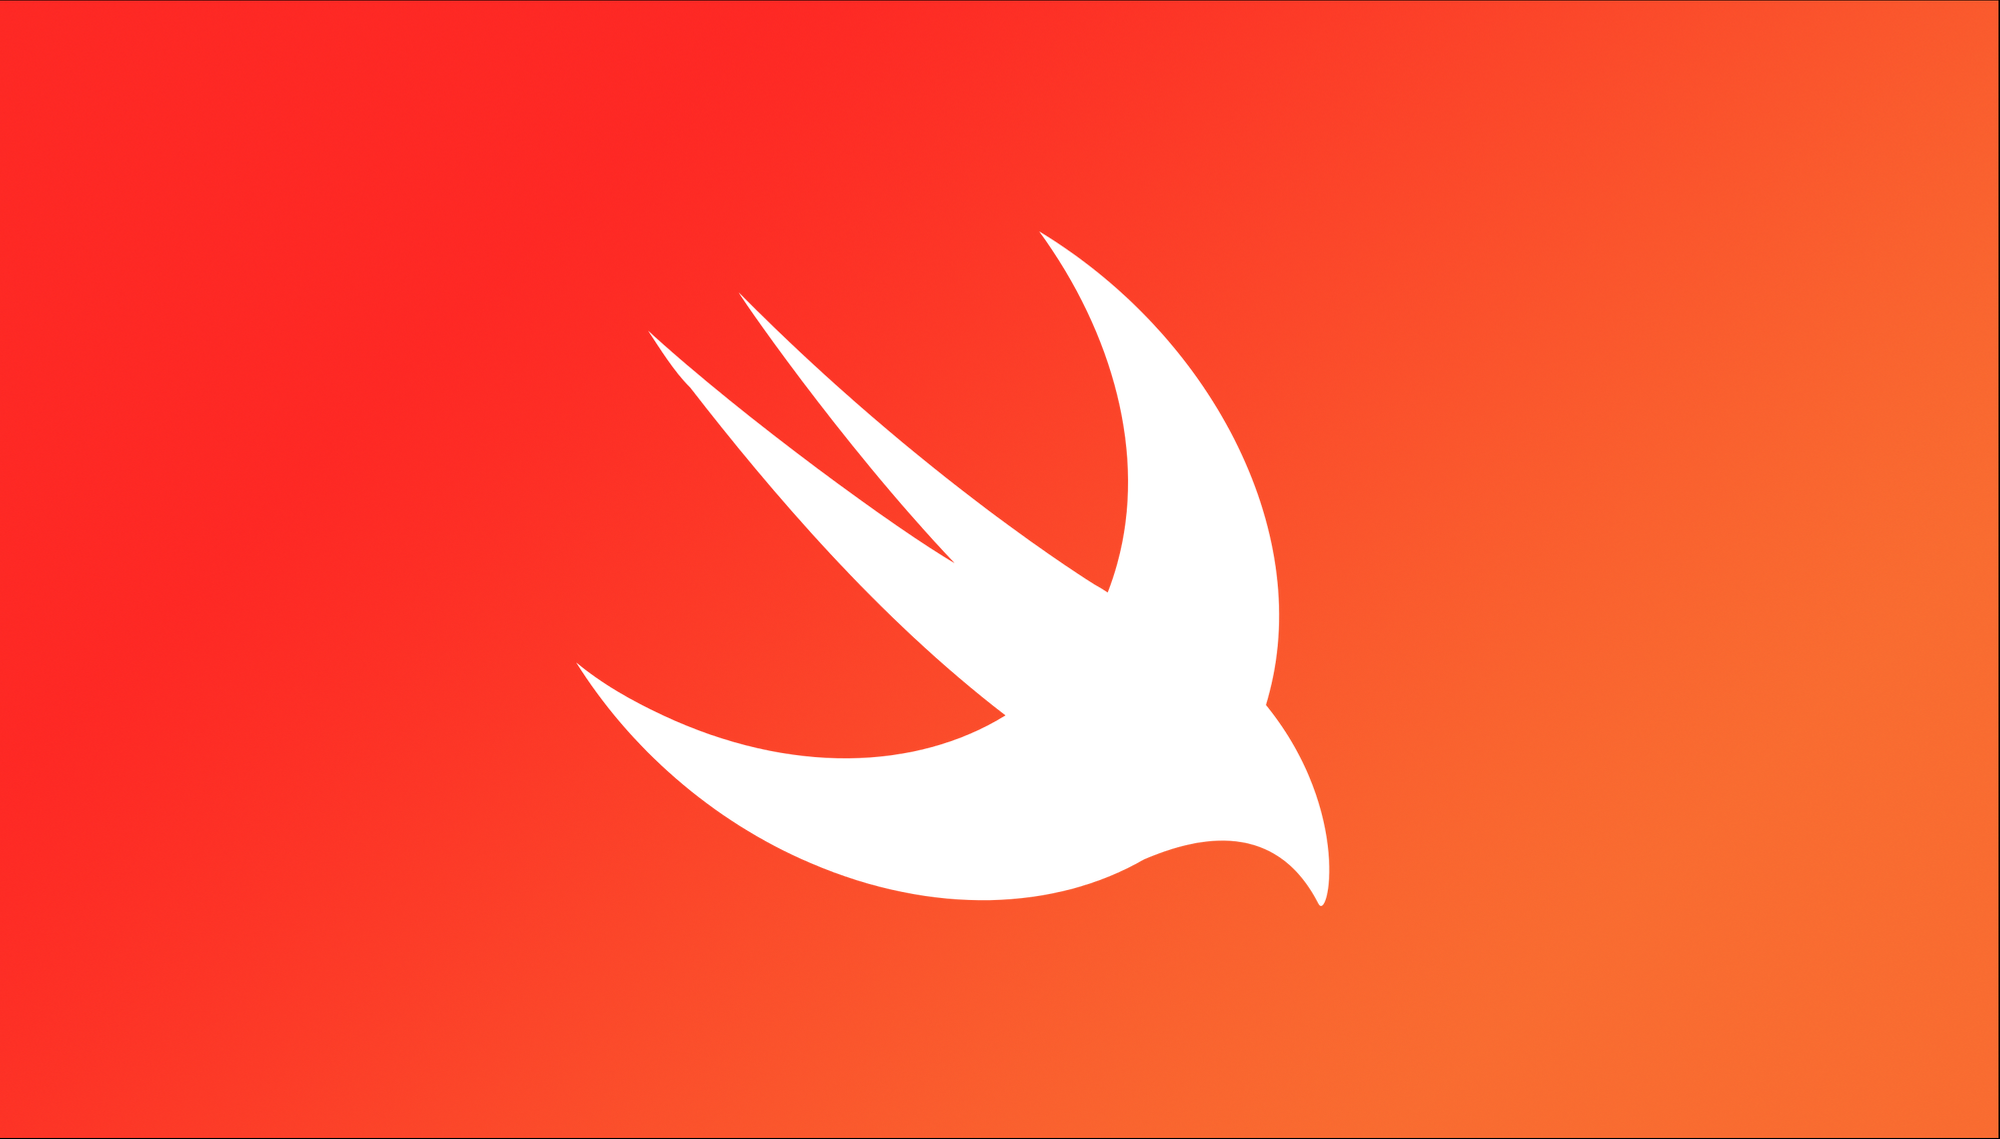 3 Strategies To Make Swift Faster